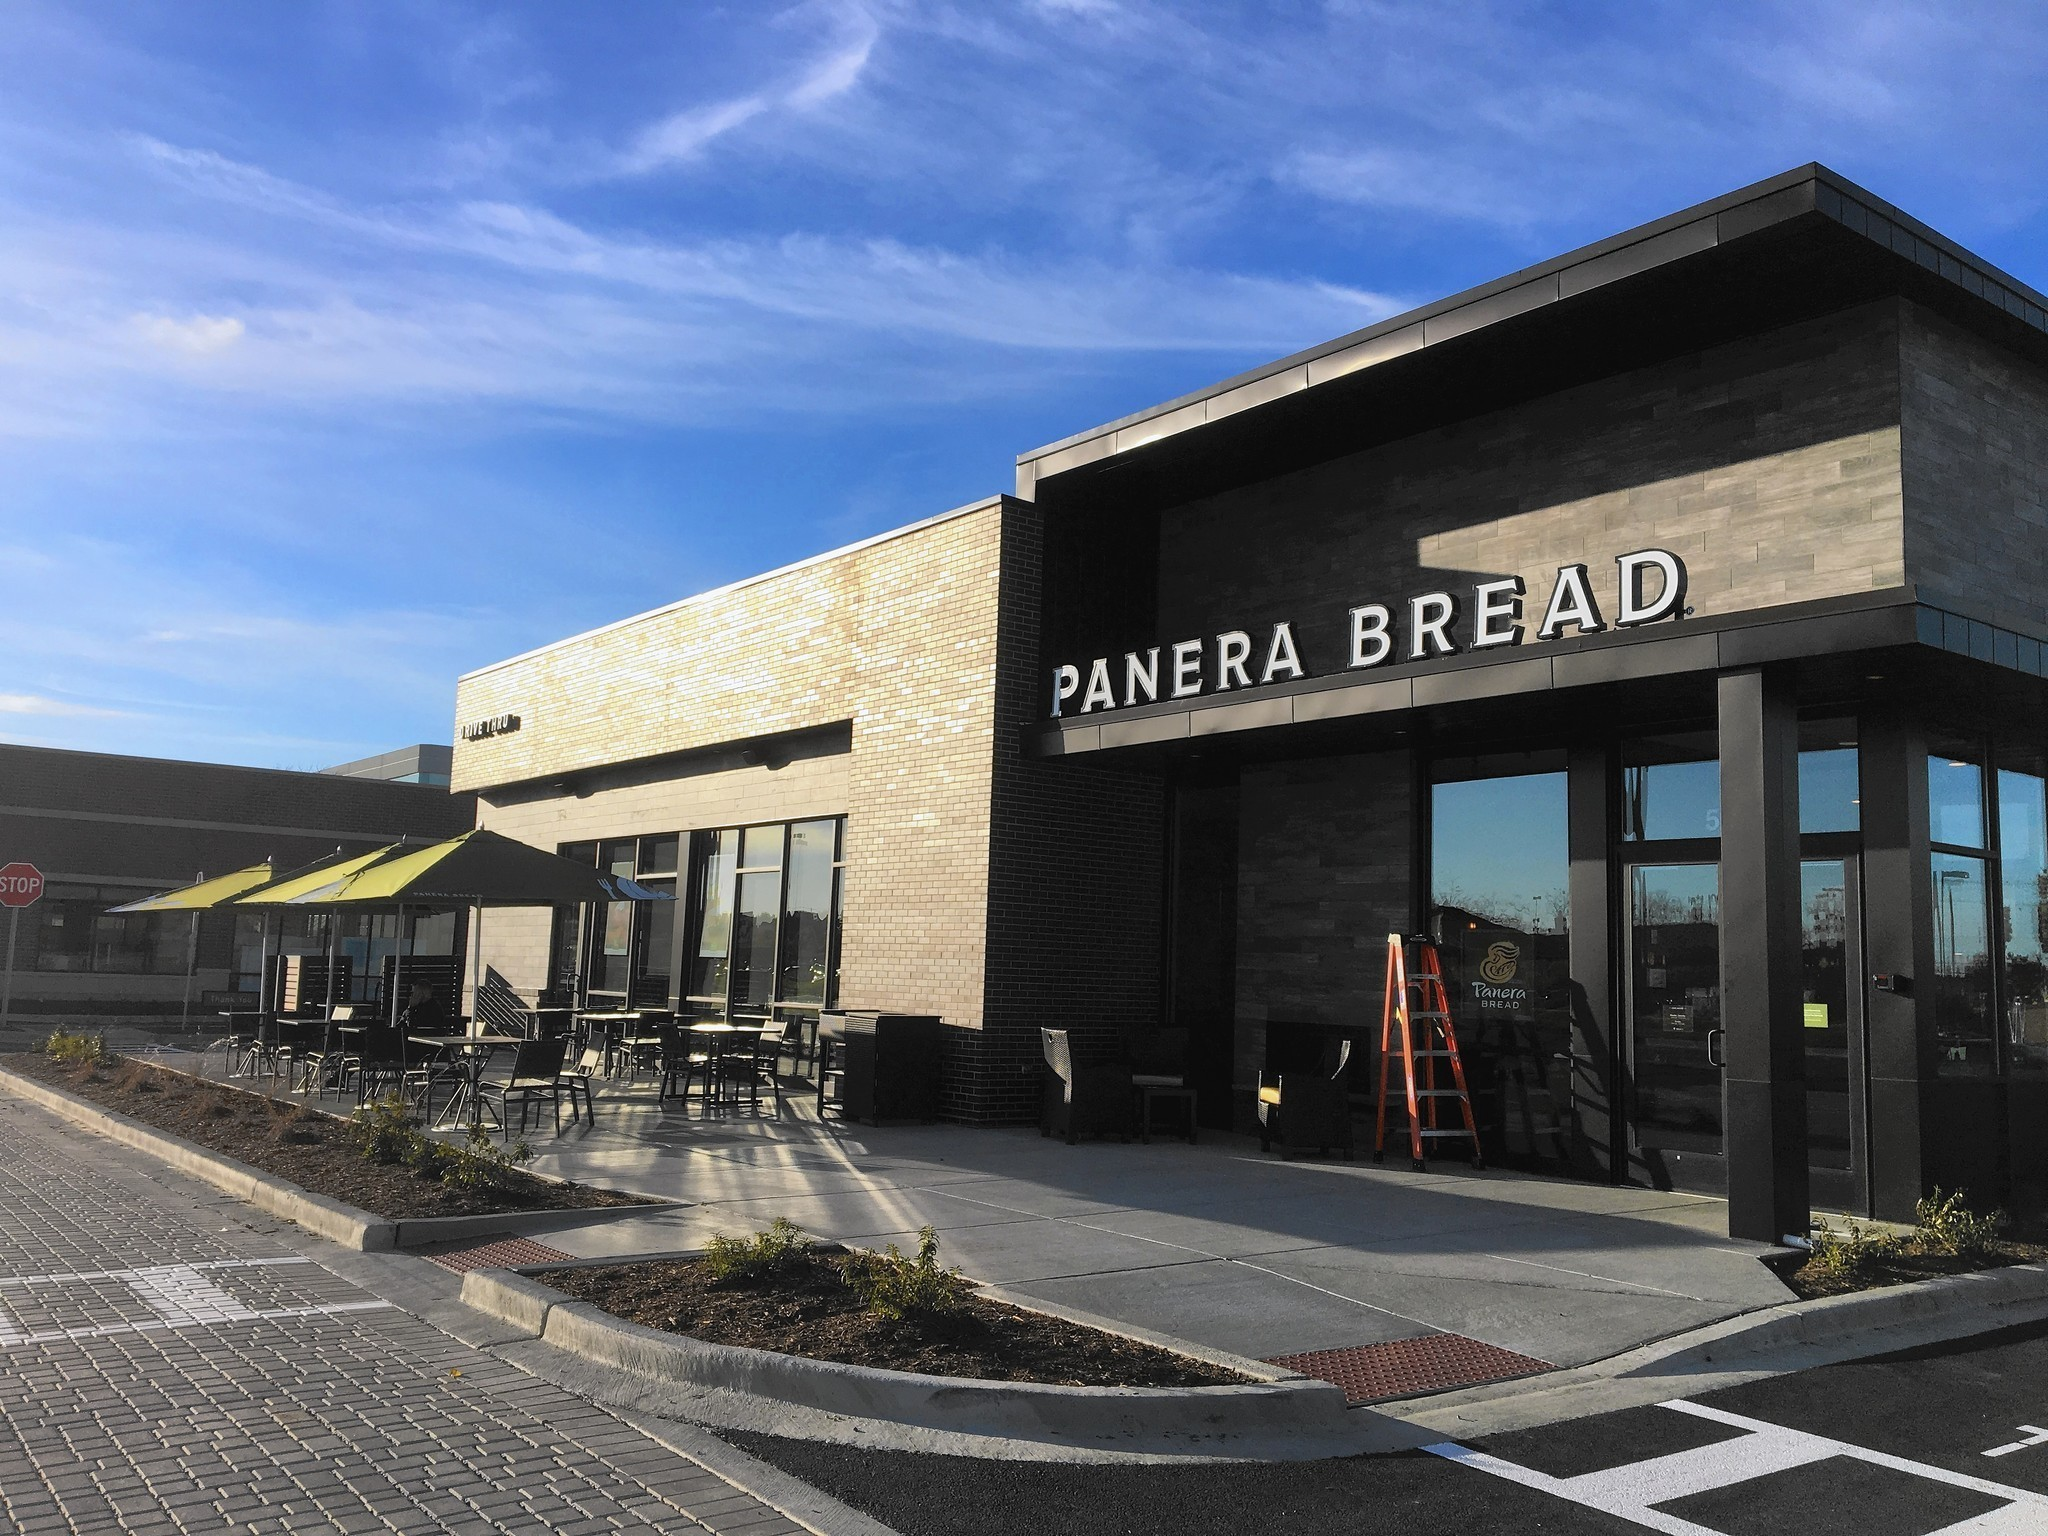 Panera Bread Closes Niles Location Opens New Location In Skokie Skokie Review